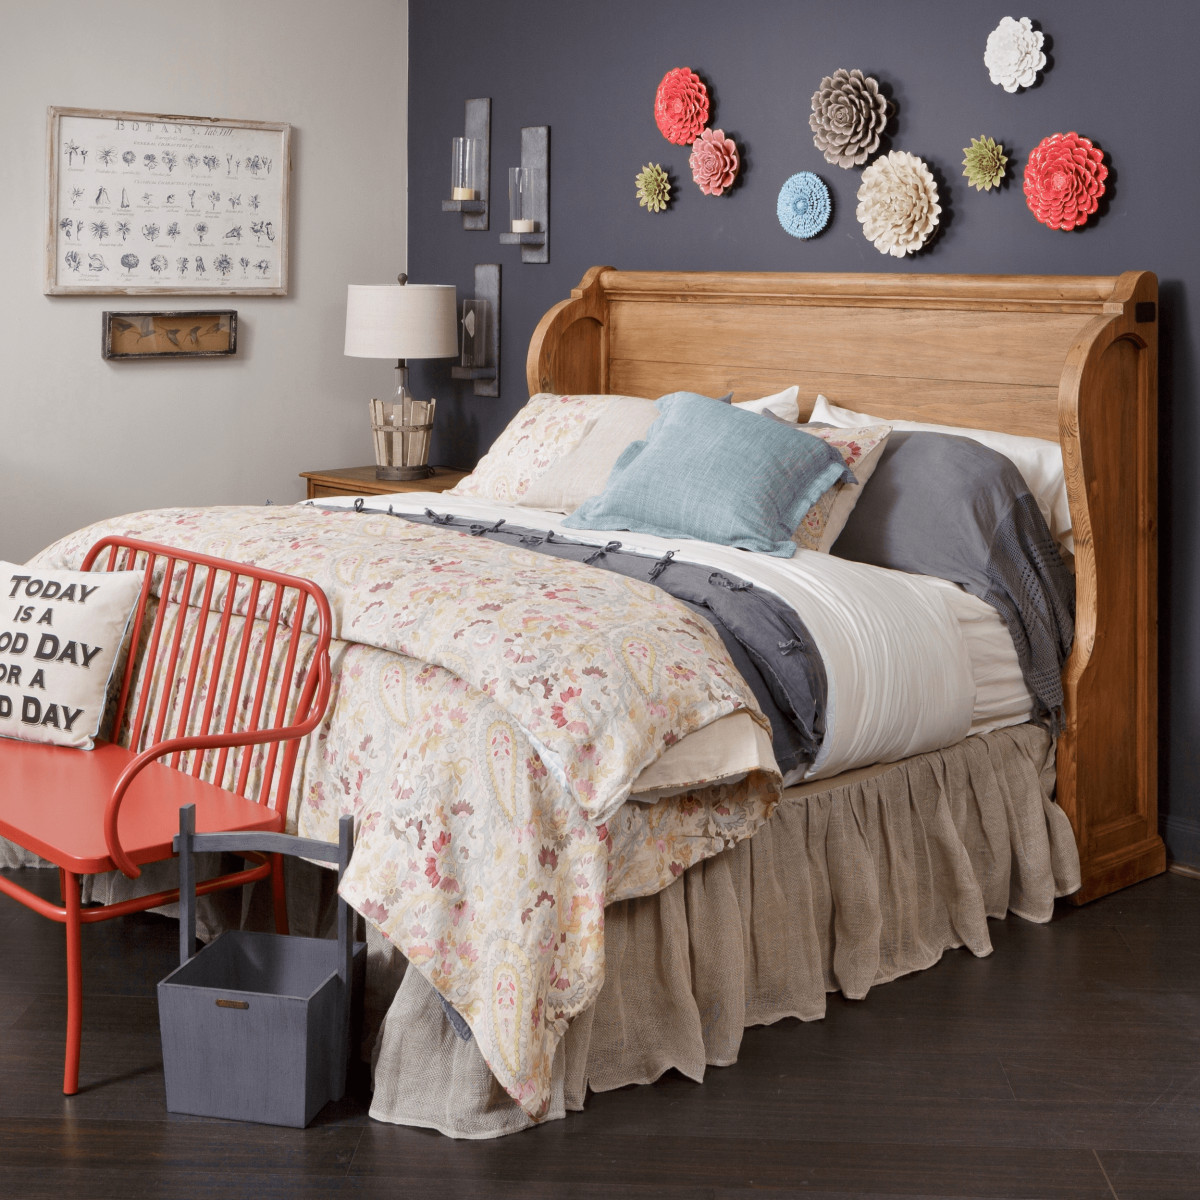 Farmers Furniture Bedroom Set Luxury Hgtv Star S Furniture Collection Brings Fixer Upper Style to